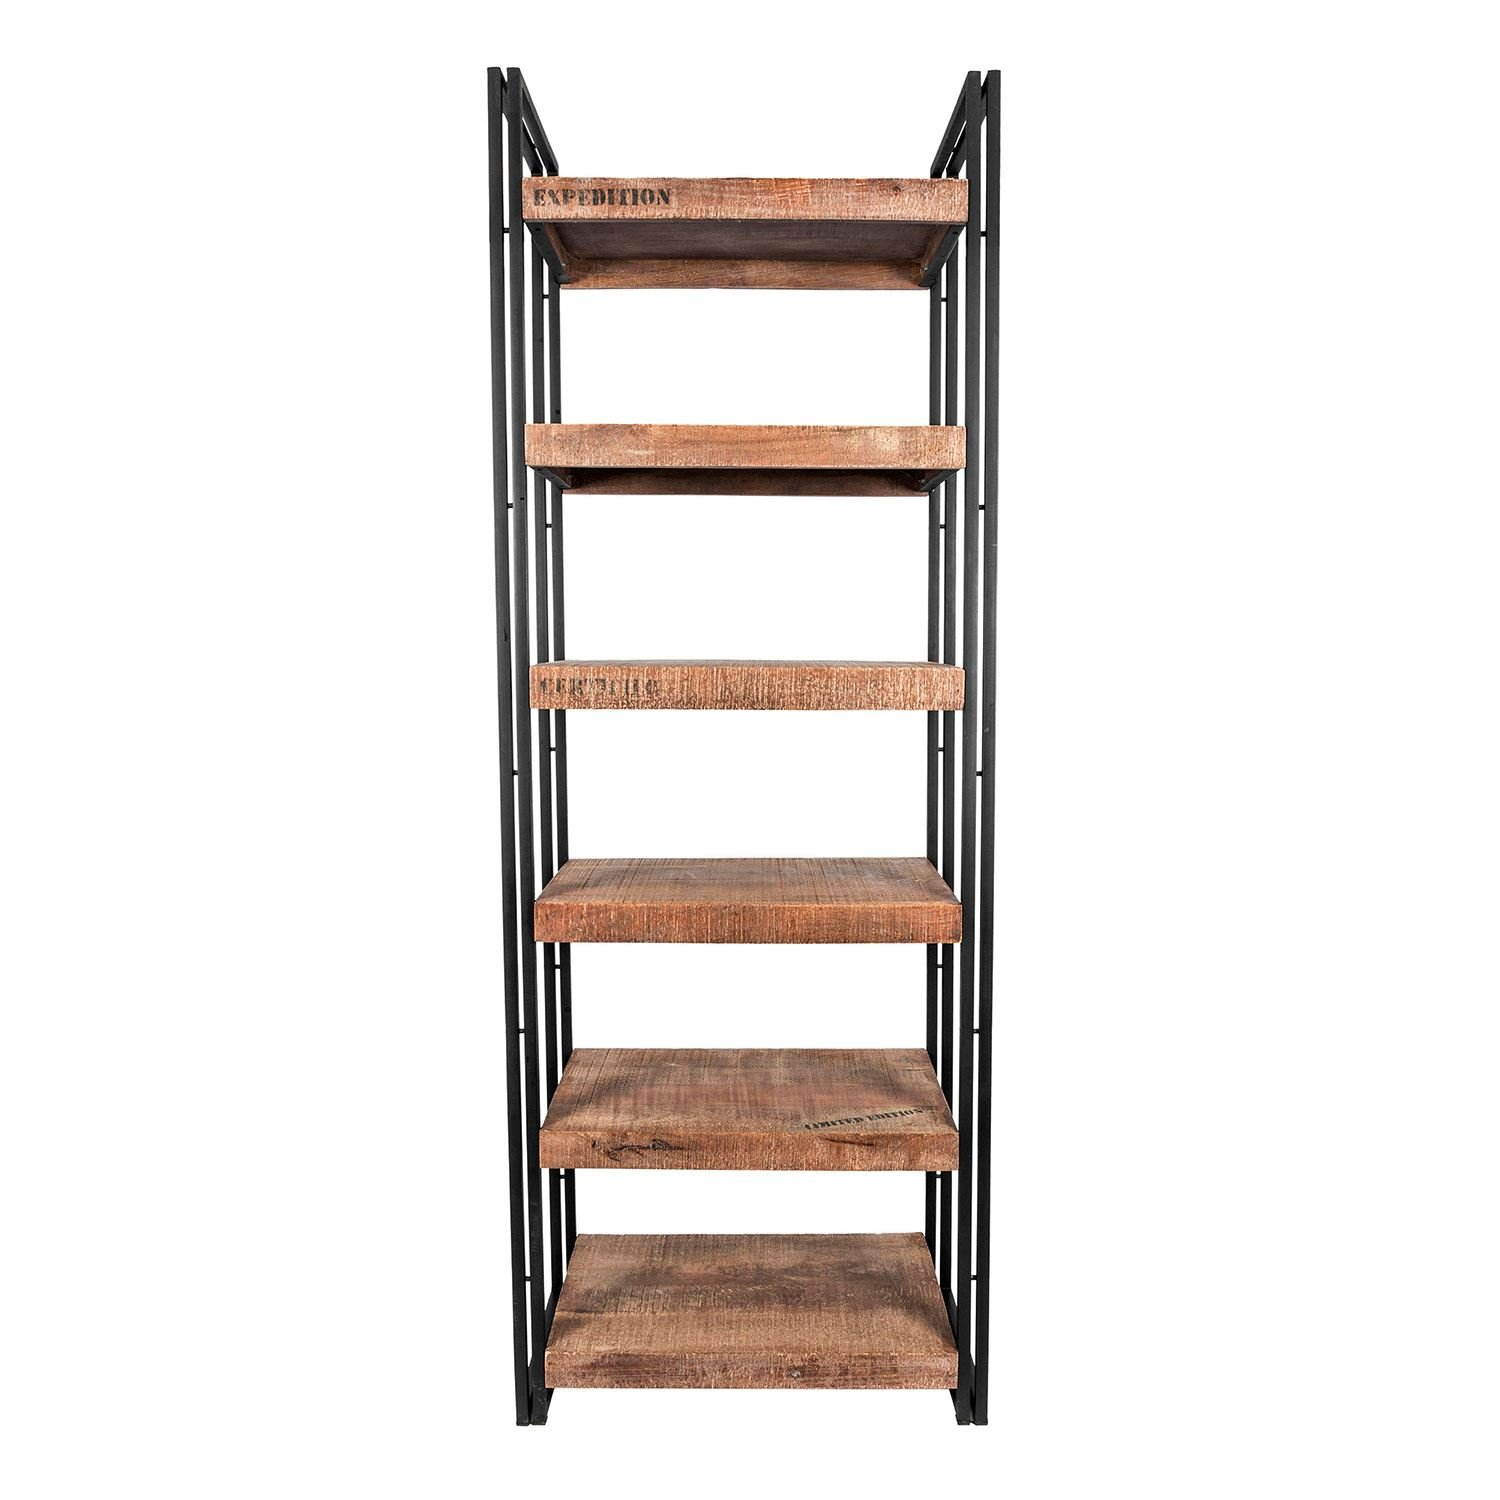 Homescapes Columbus Tall Bookshelf Or Display Unit - Industrial Reclaimed  Wood Furniture Versatile Bookcase With Six